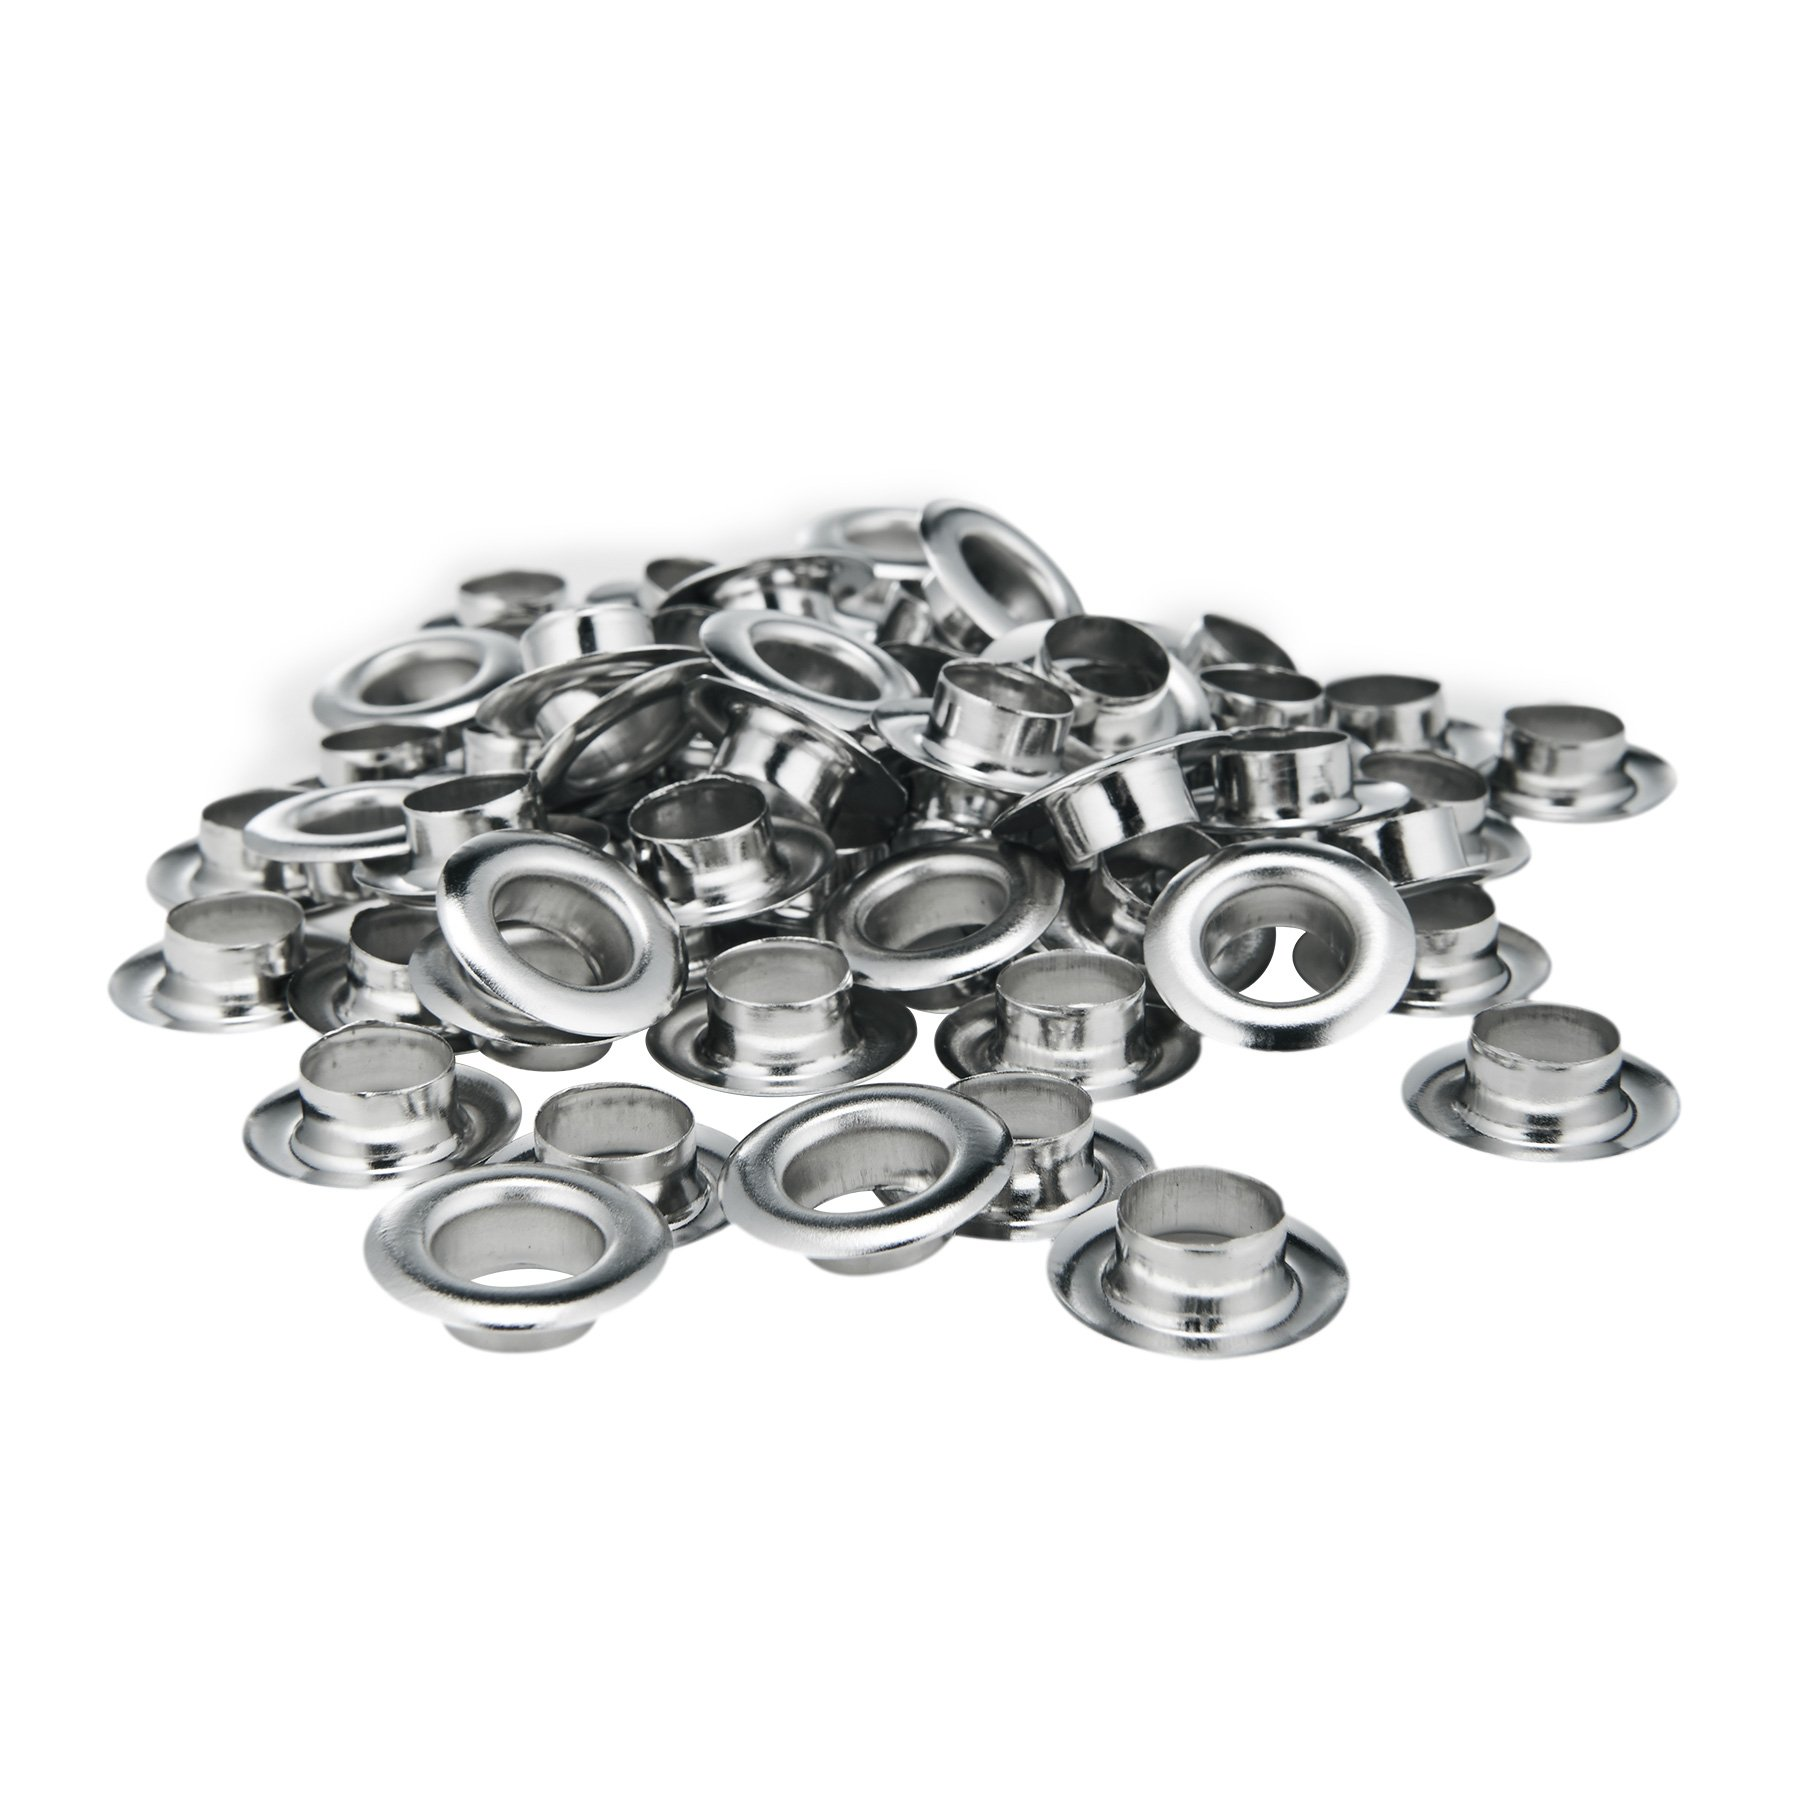 Pinty 1000 Grommets + 1000 Washers - Nickel Finish - #2 Size, 3/8'' Eyelets by Pinty (Image #3)